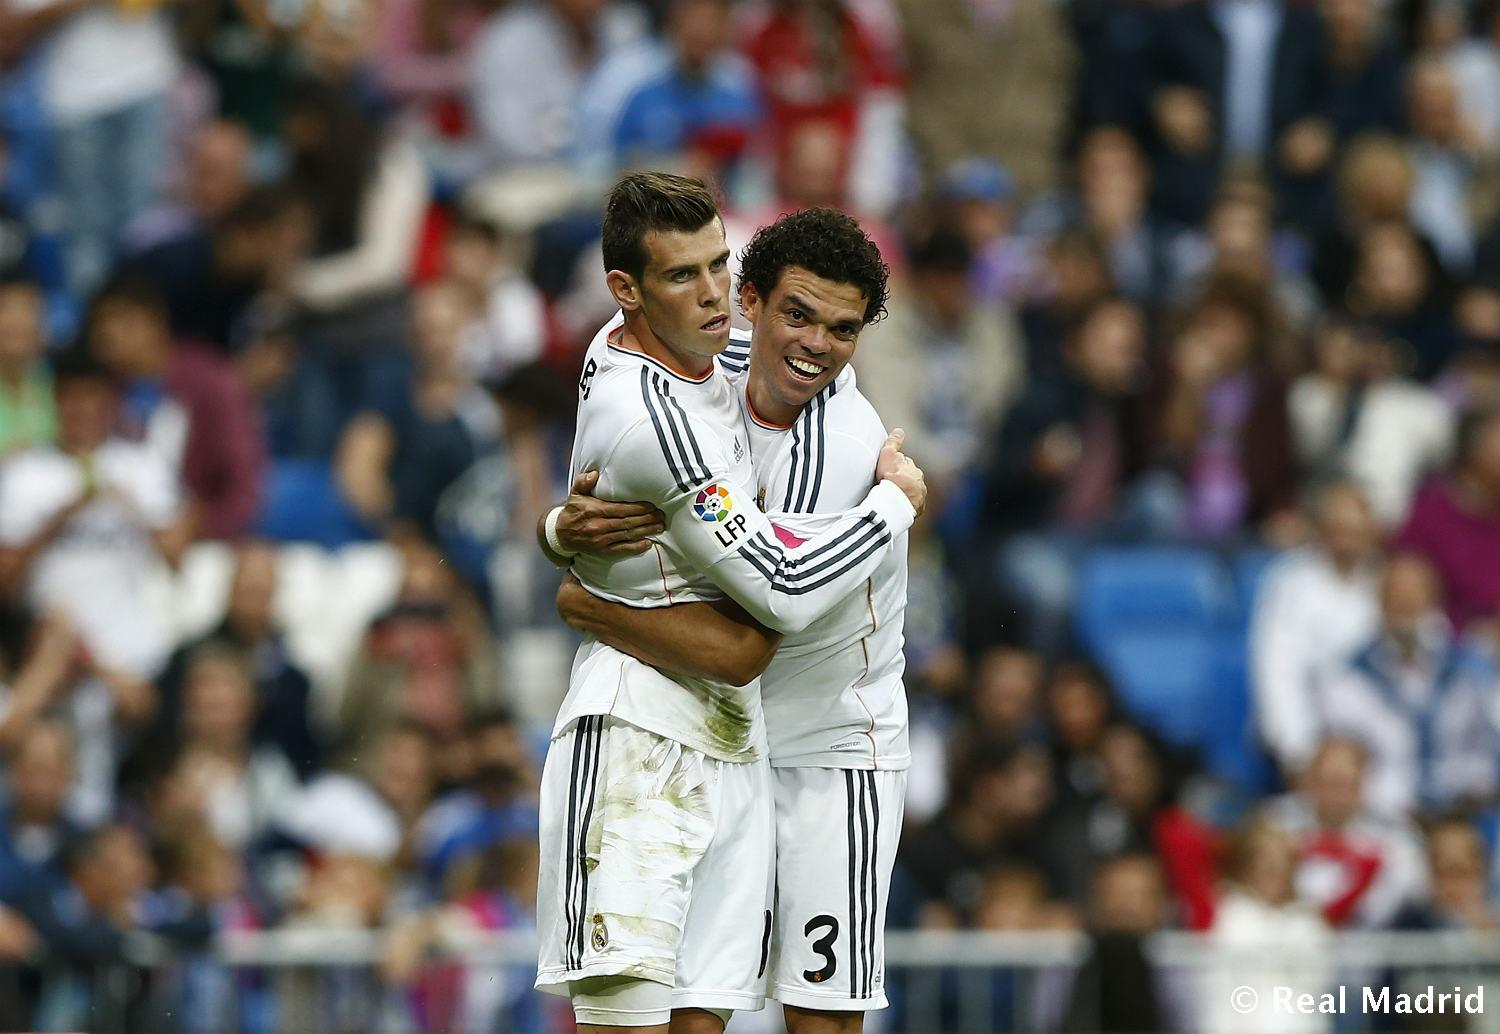 Real Madrid - Pepe y Bale - 27-01-2014